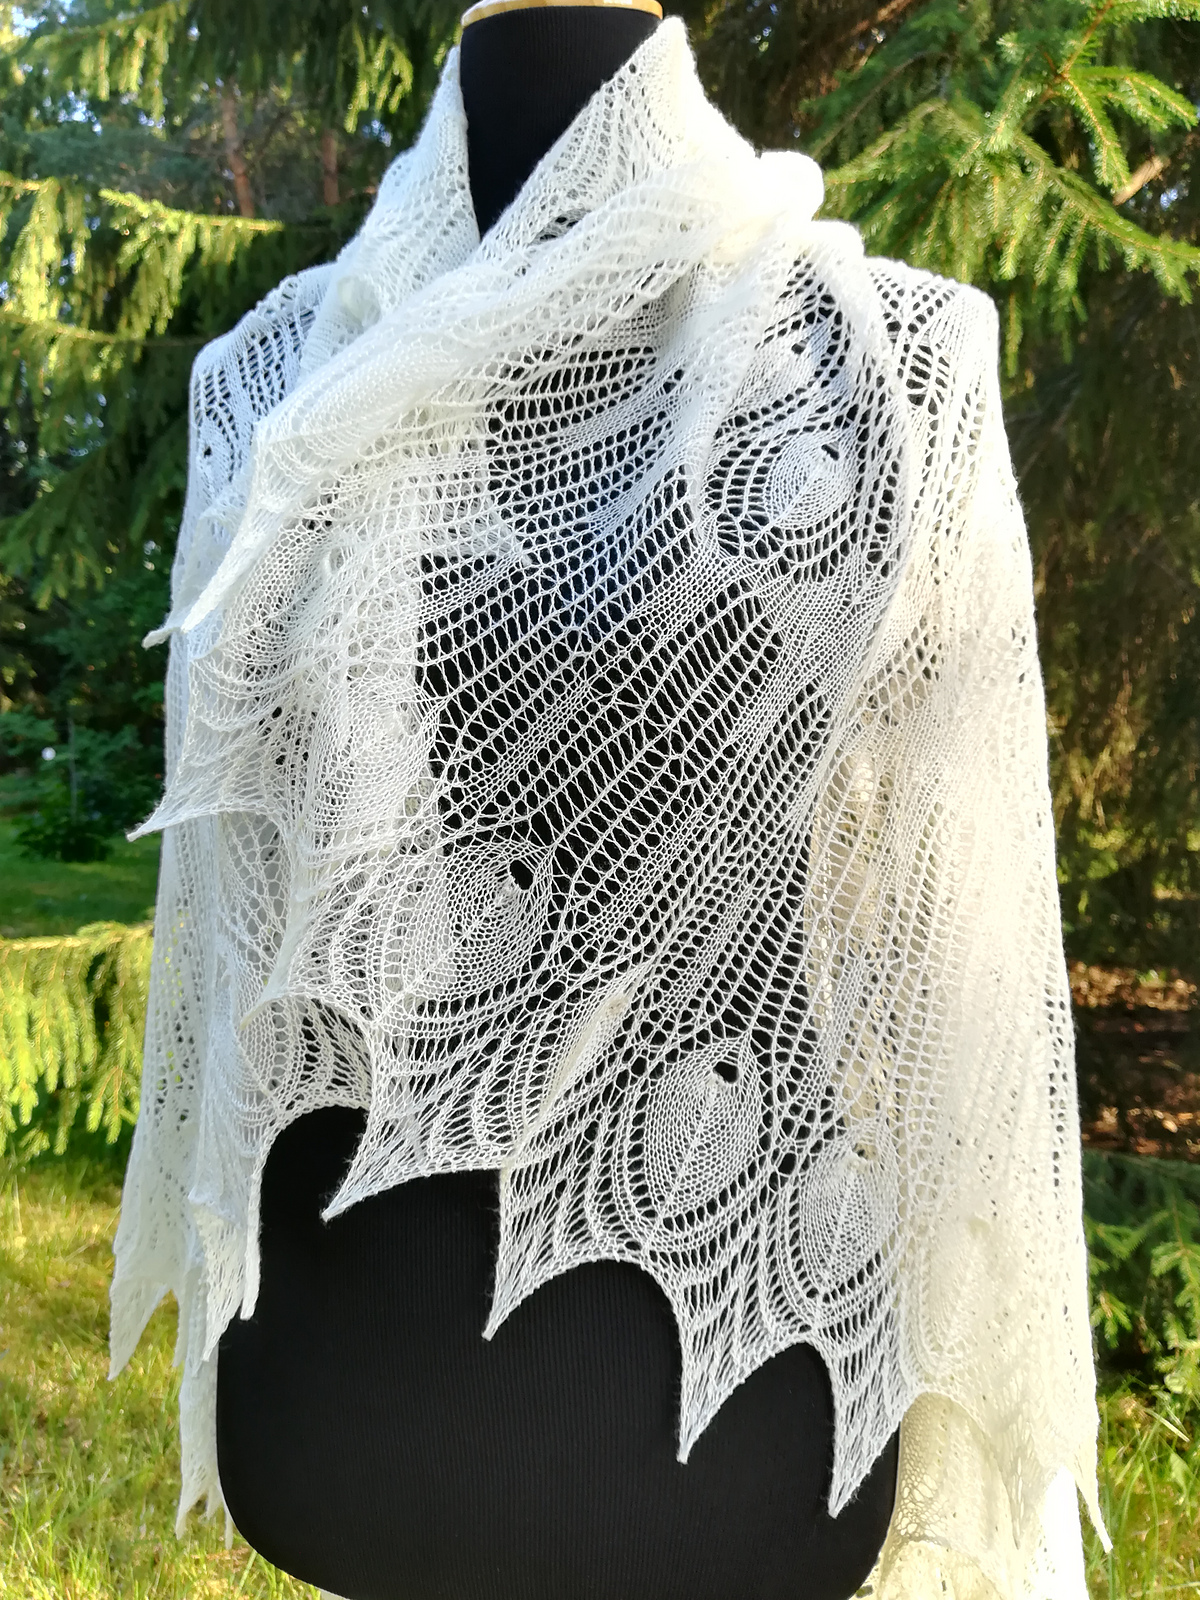 Knit a Gorgeous Wedding Peacock Shawl ... Hard To Believe This Lacey Pattern is FREE!